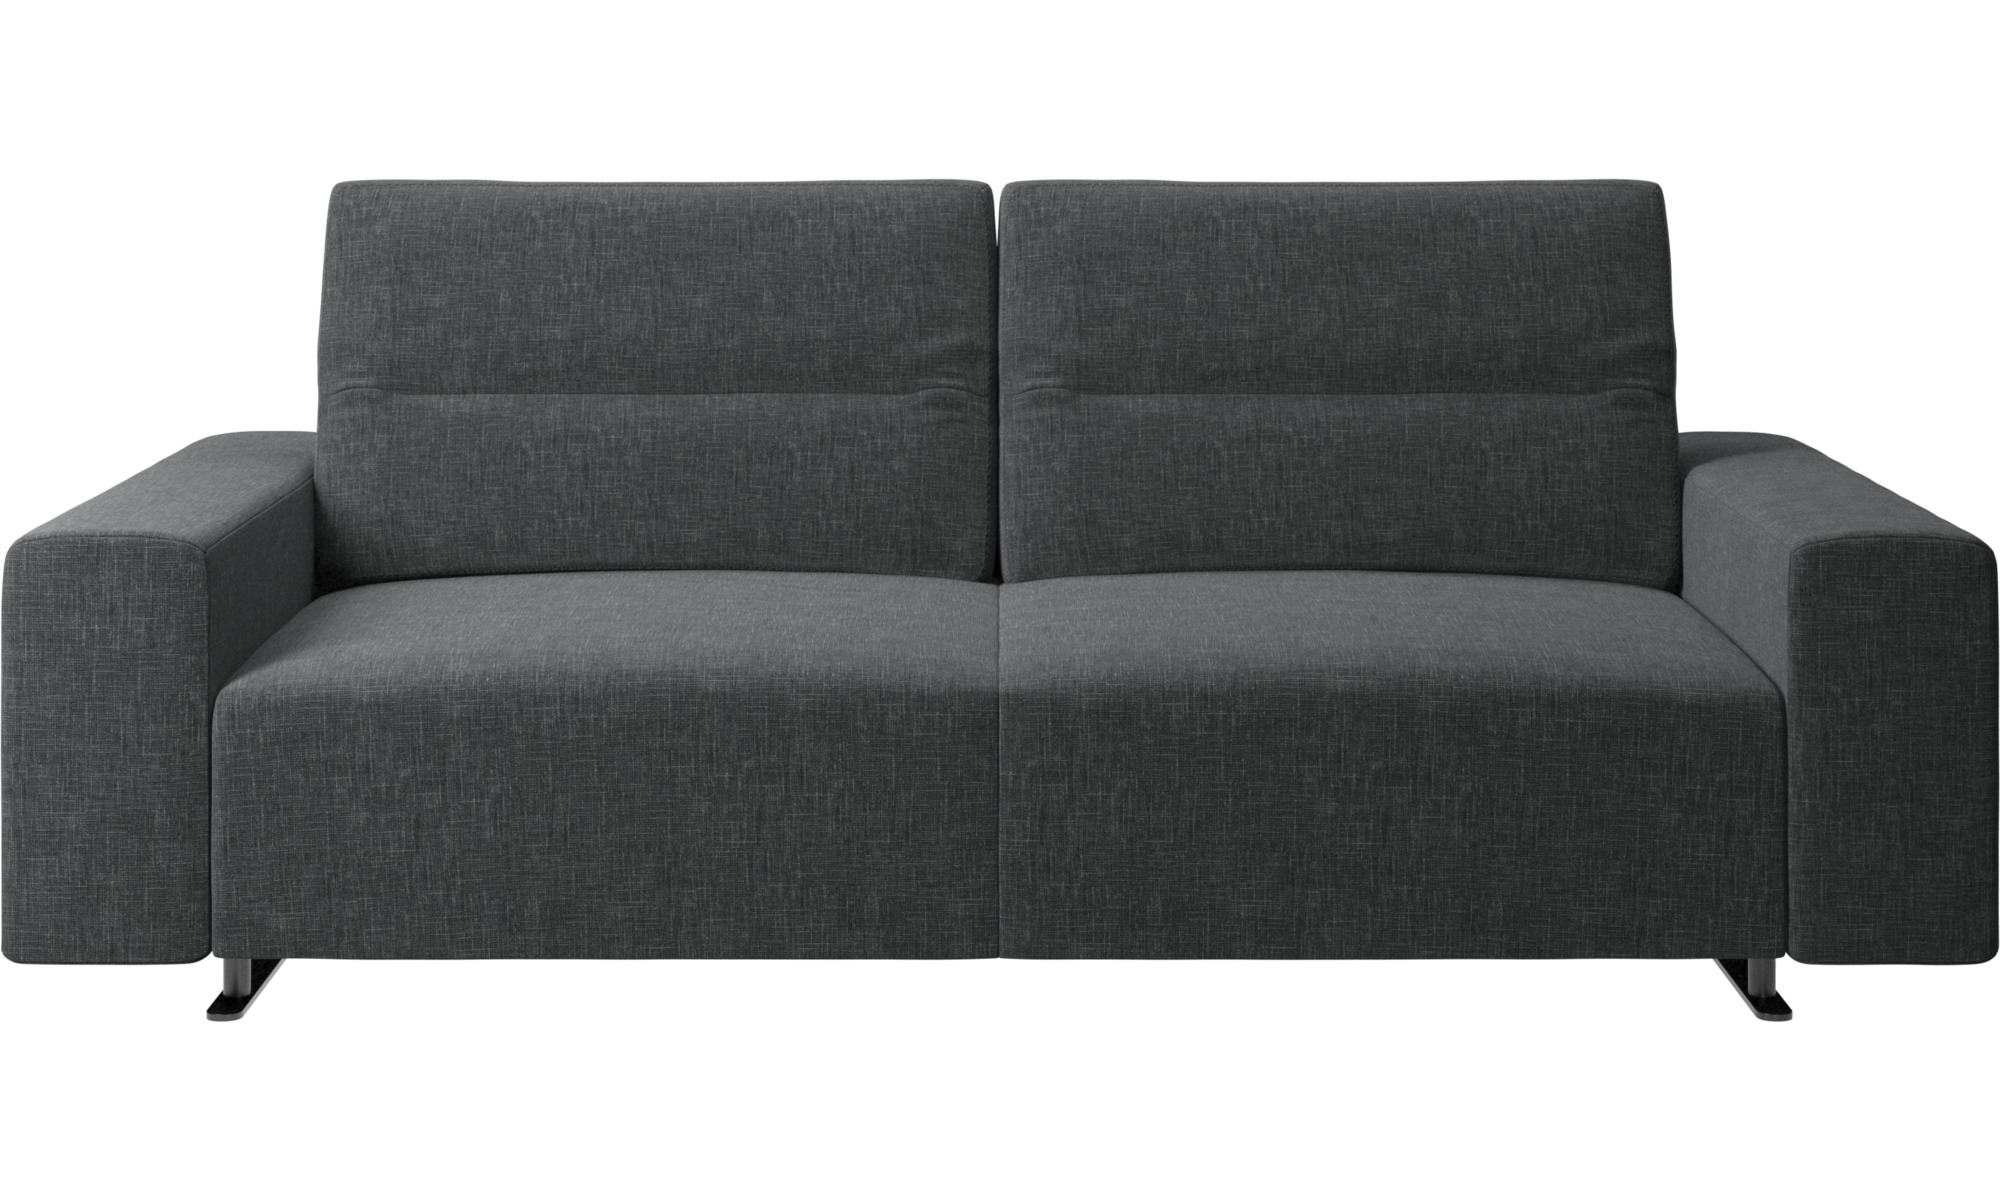 Sensational Hampton Sofa With Adjustable Back And Storage On The Right Andrewgaddart Wooden Chair Designs For Living Room Andrewgaddartcom